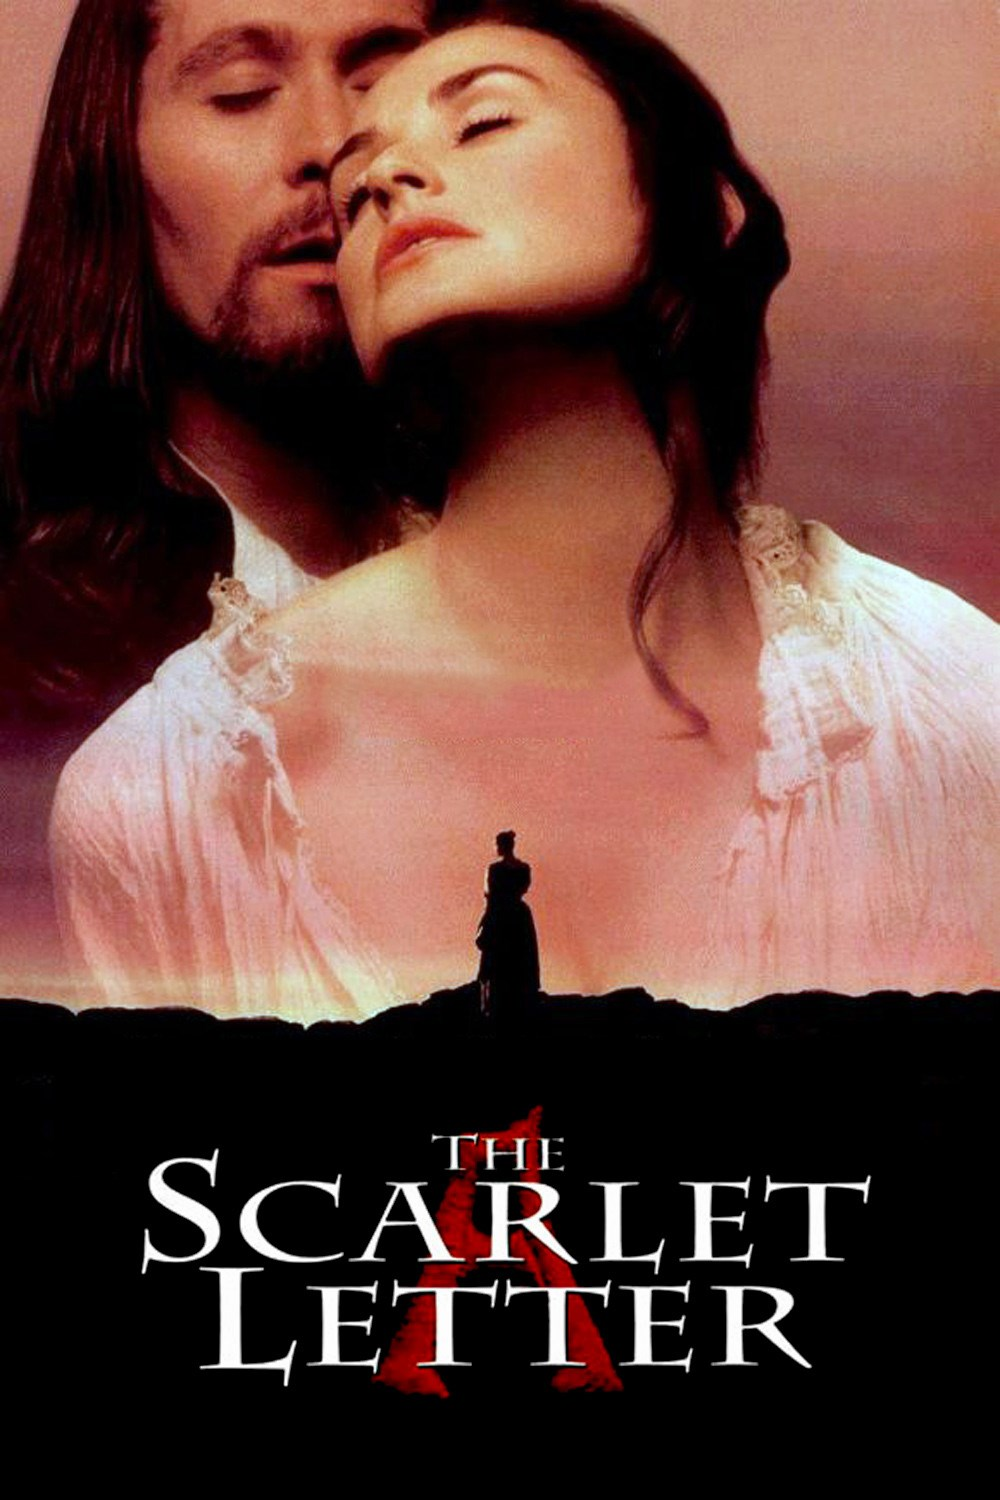 the scarlett letter Review: the scarlet letter user review - nutsa - goodreads we are all aware of the scarlet letter by the great nathaniel hawthorne so called masterpiece.